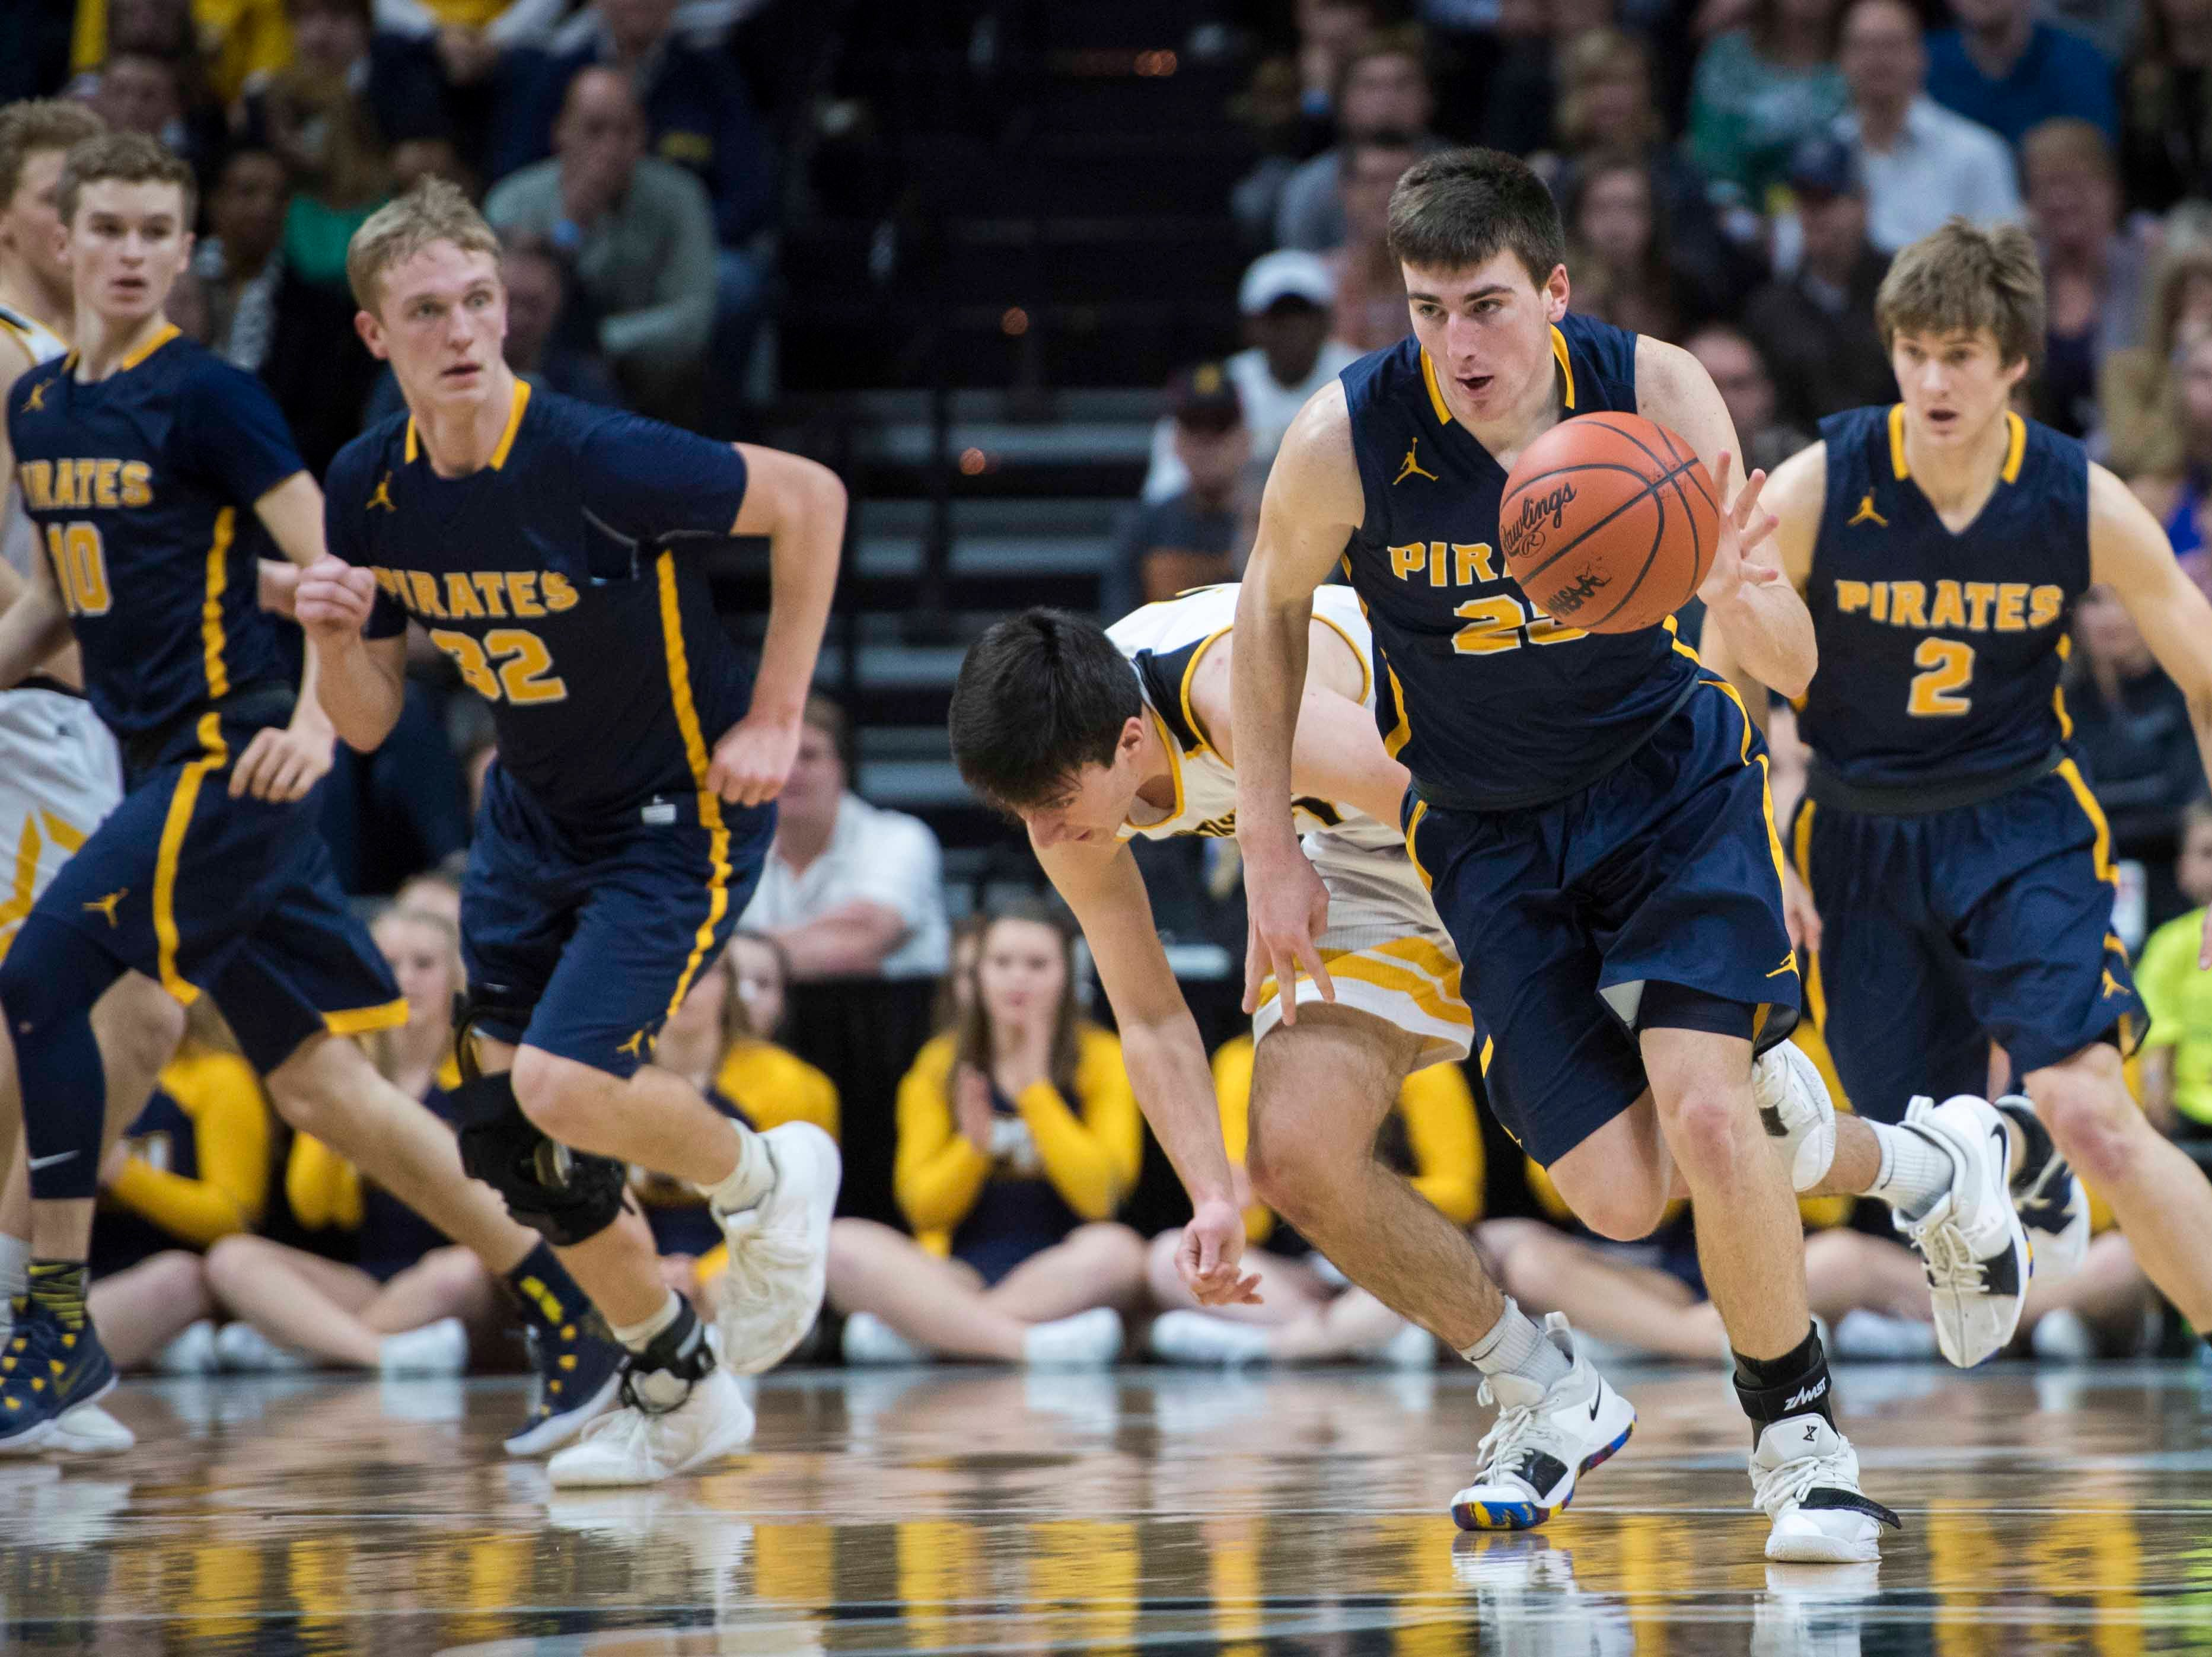 Pewamo-Westphalia's Aaron Bearss drives the ball up the court in the first half.